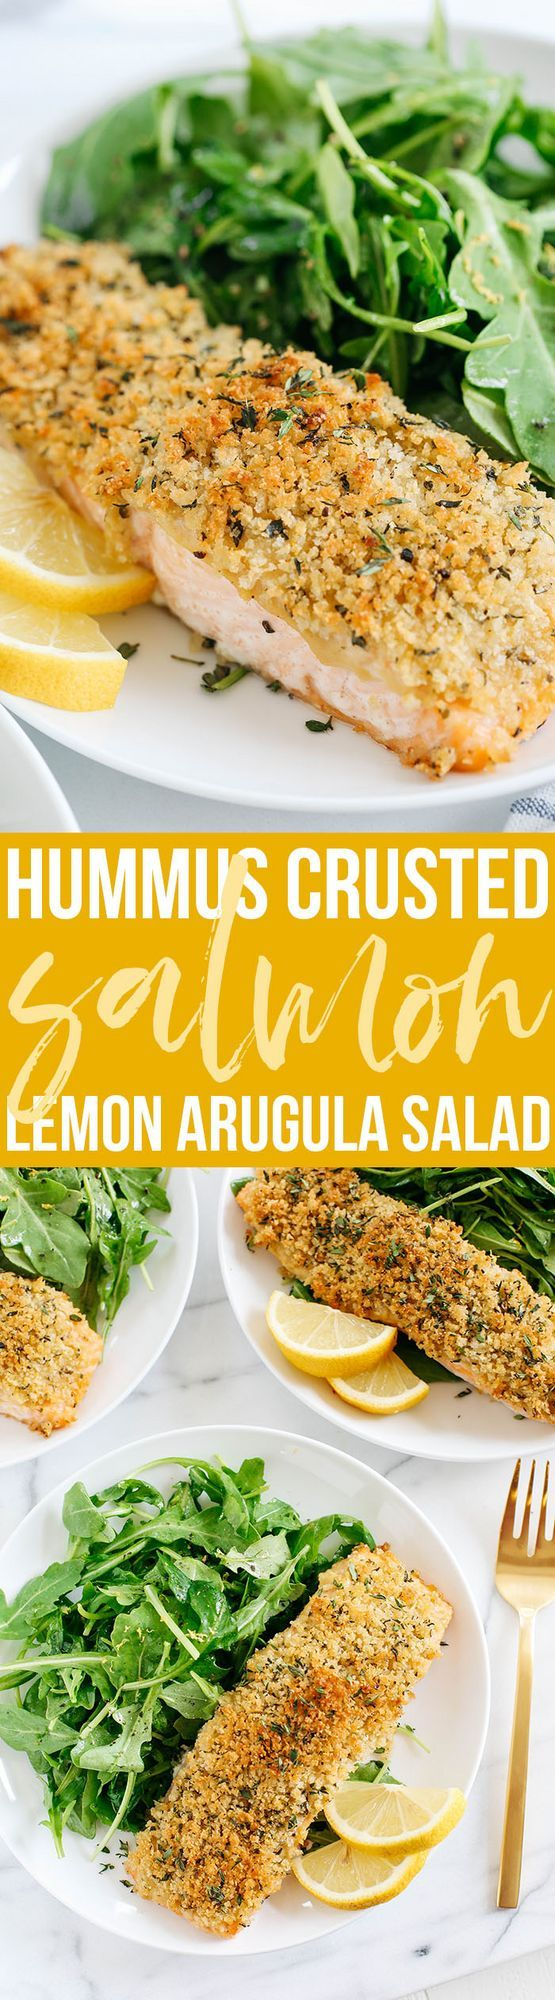 Hummus Crusted Salmon baked to perfection and served with a delicious Lemon Arugula Salad for the perfect healthy weeknight meal ready in under 30 minutes! This post was sponsored by Alaska Seafood as